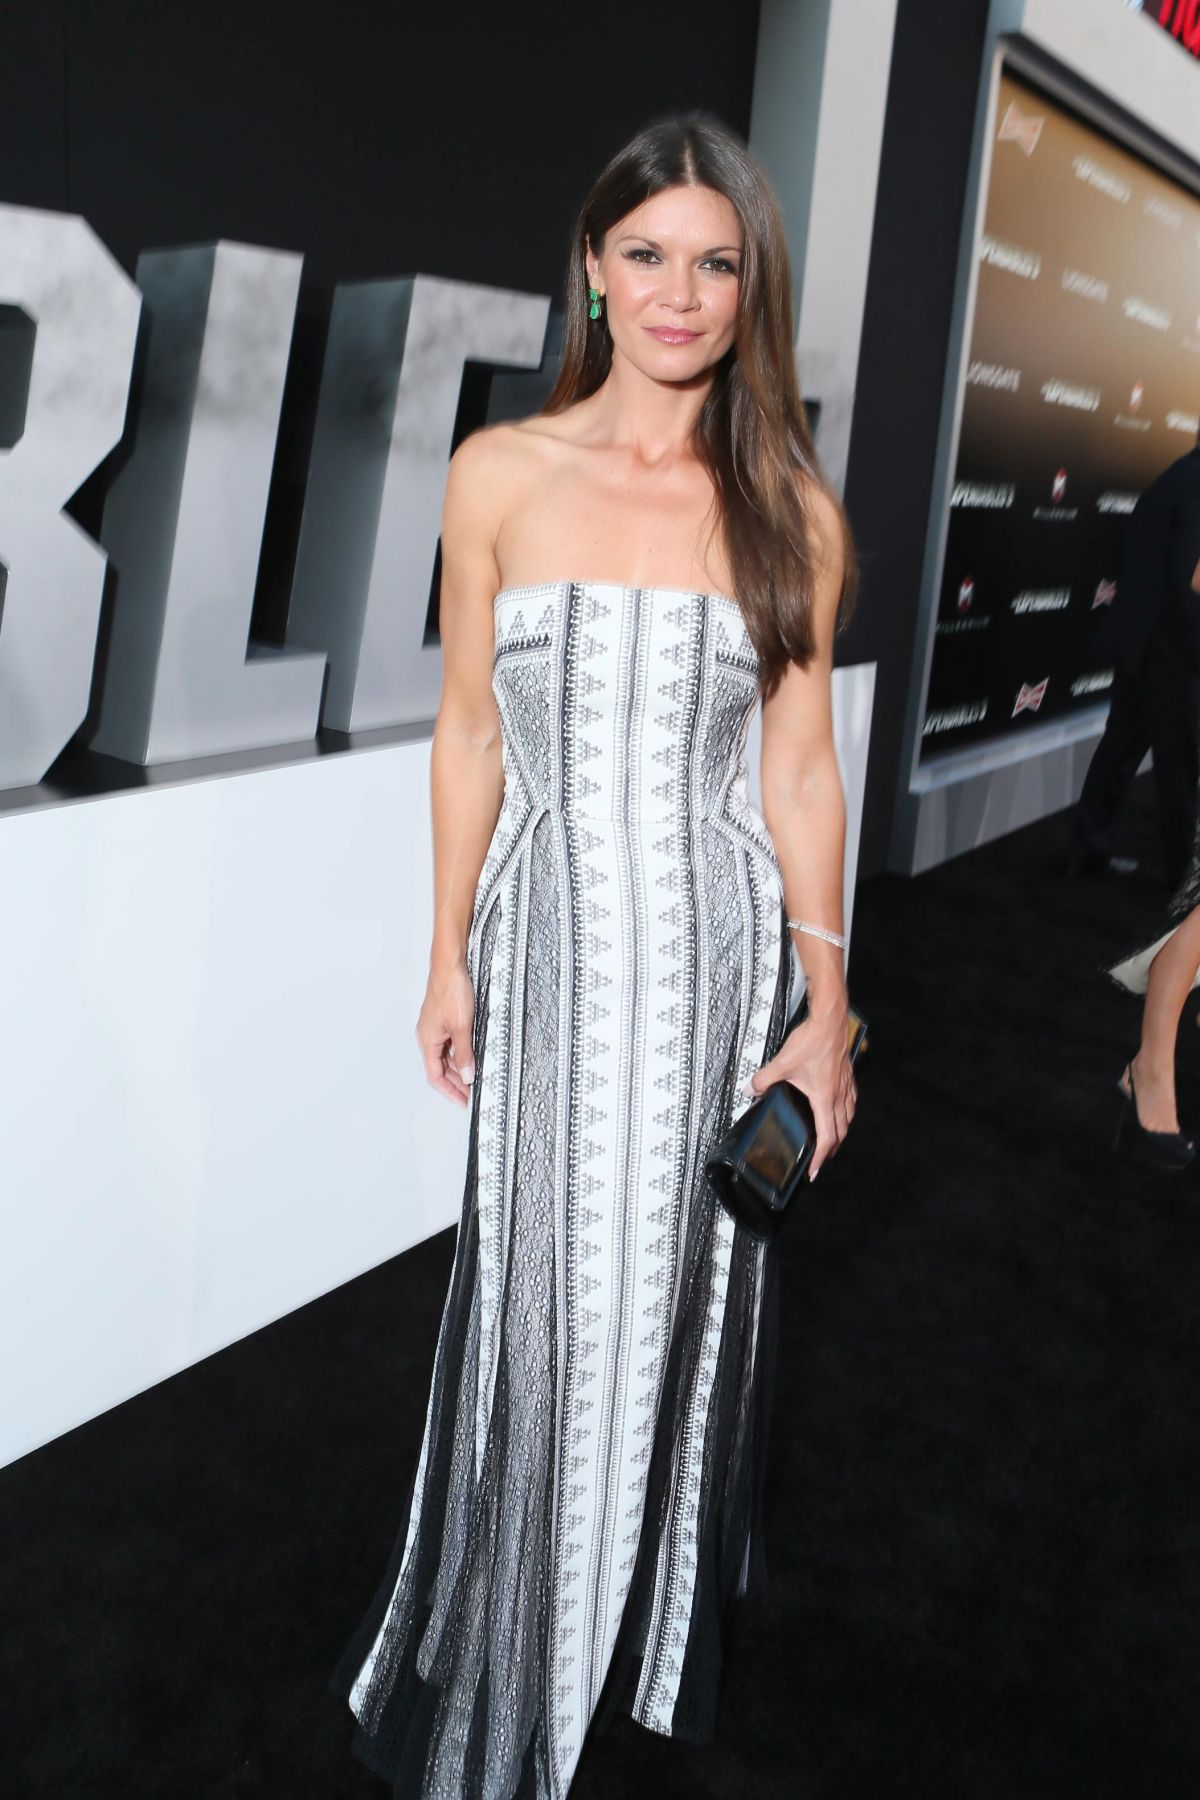 DANIELLE CASINOVA at The Expendables 3 Priemere in Los Angeles